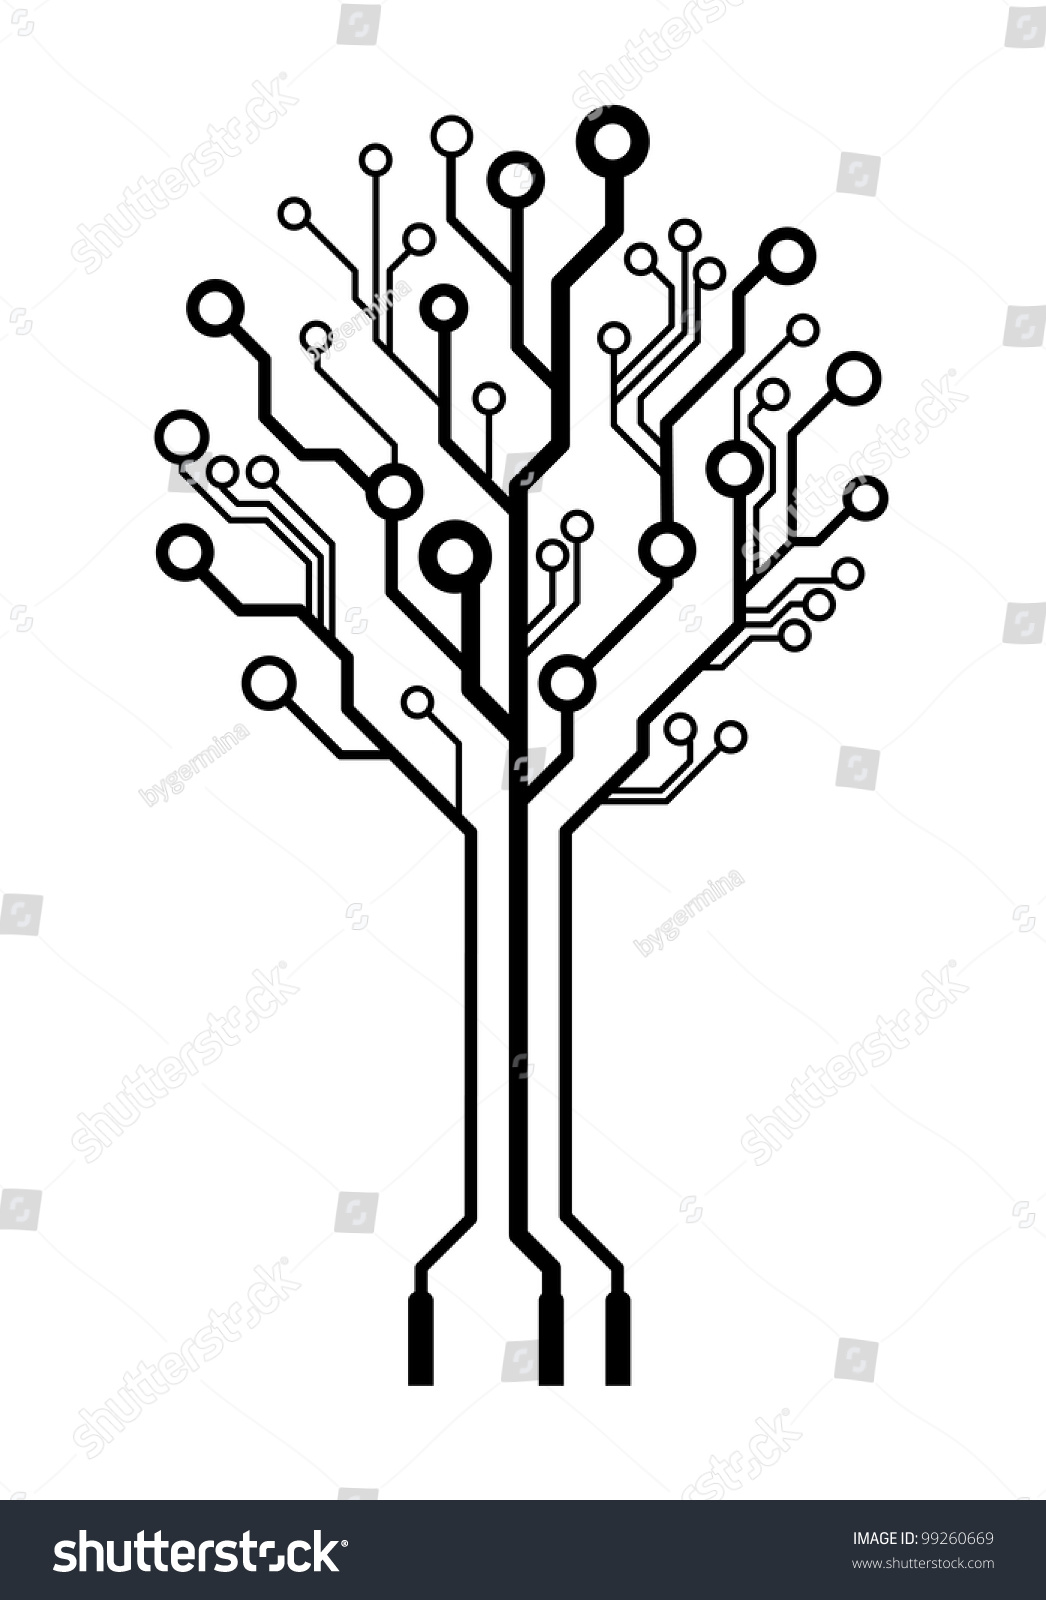 Famous Technology Wires Contemporary - Wiring Diagram Ideas ...